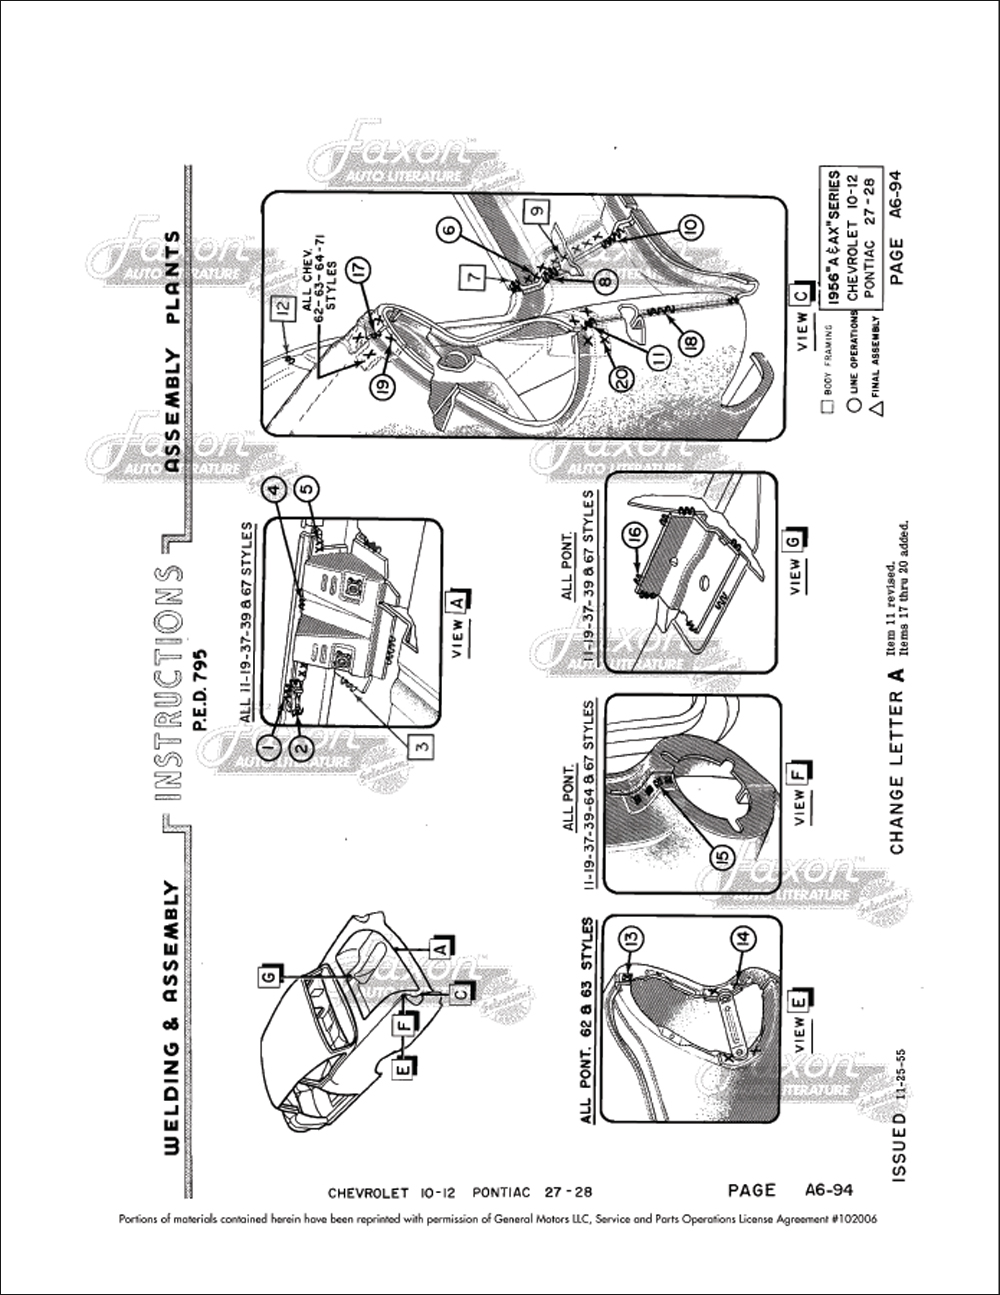 1951 pontiac wiring diagram